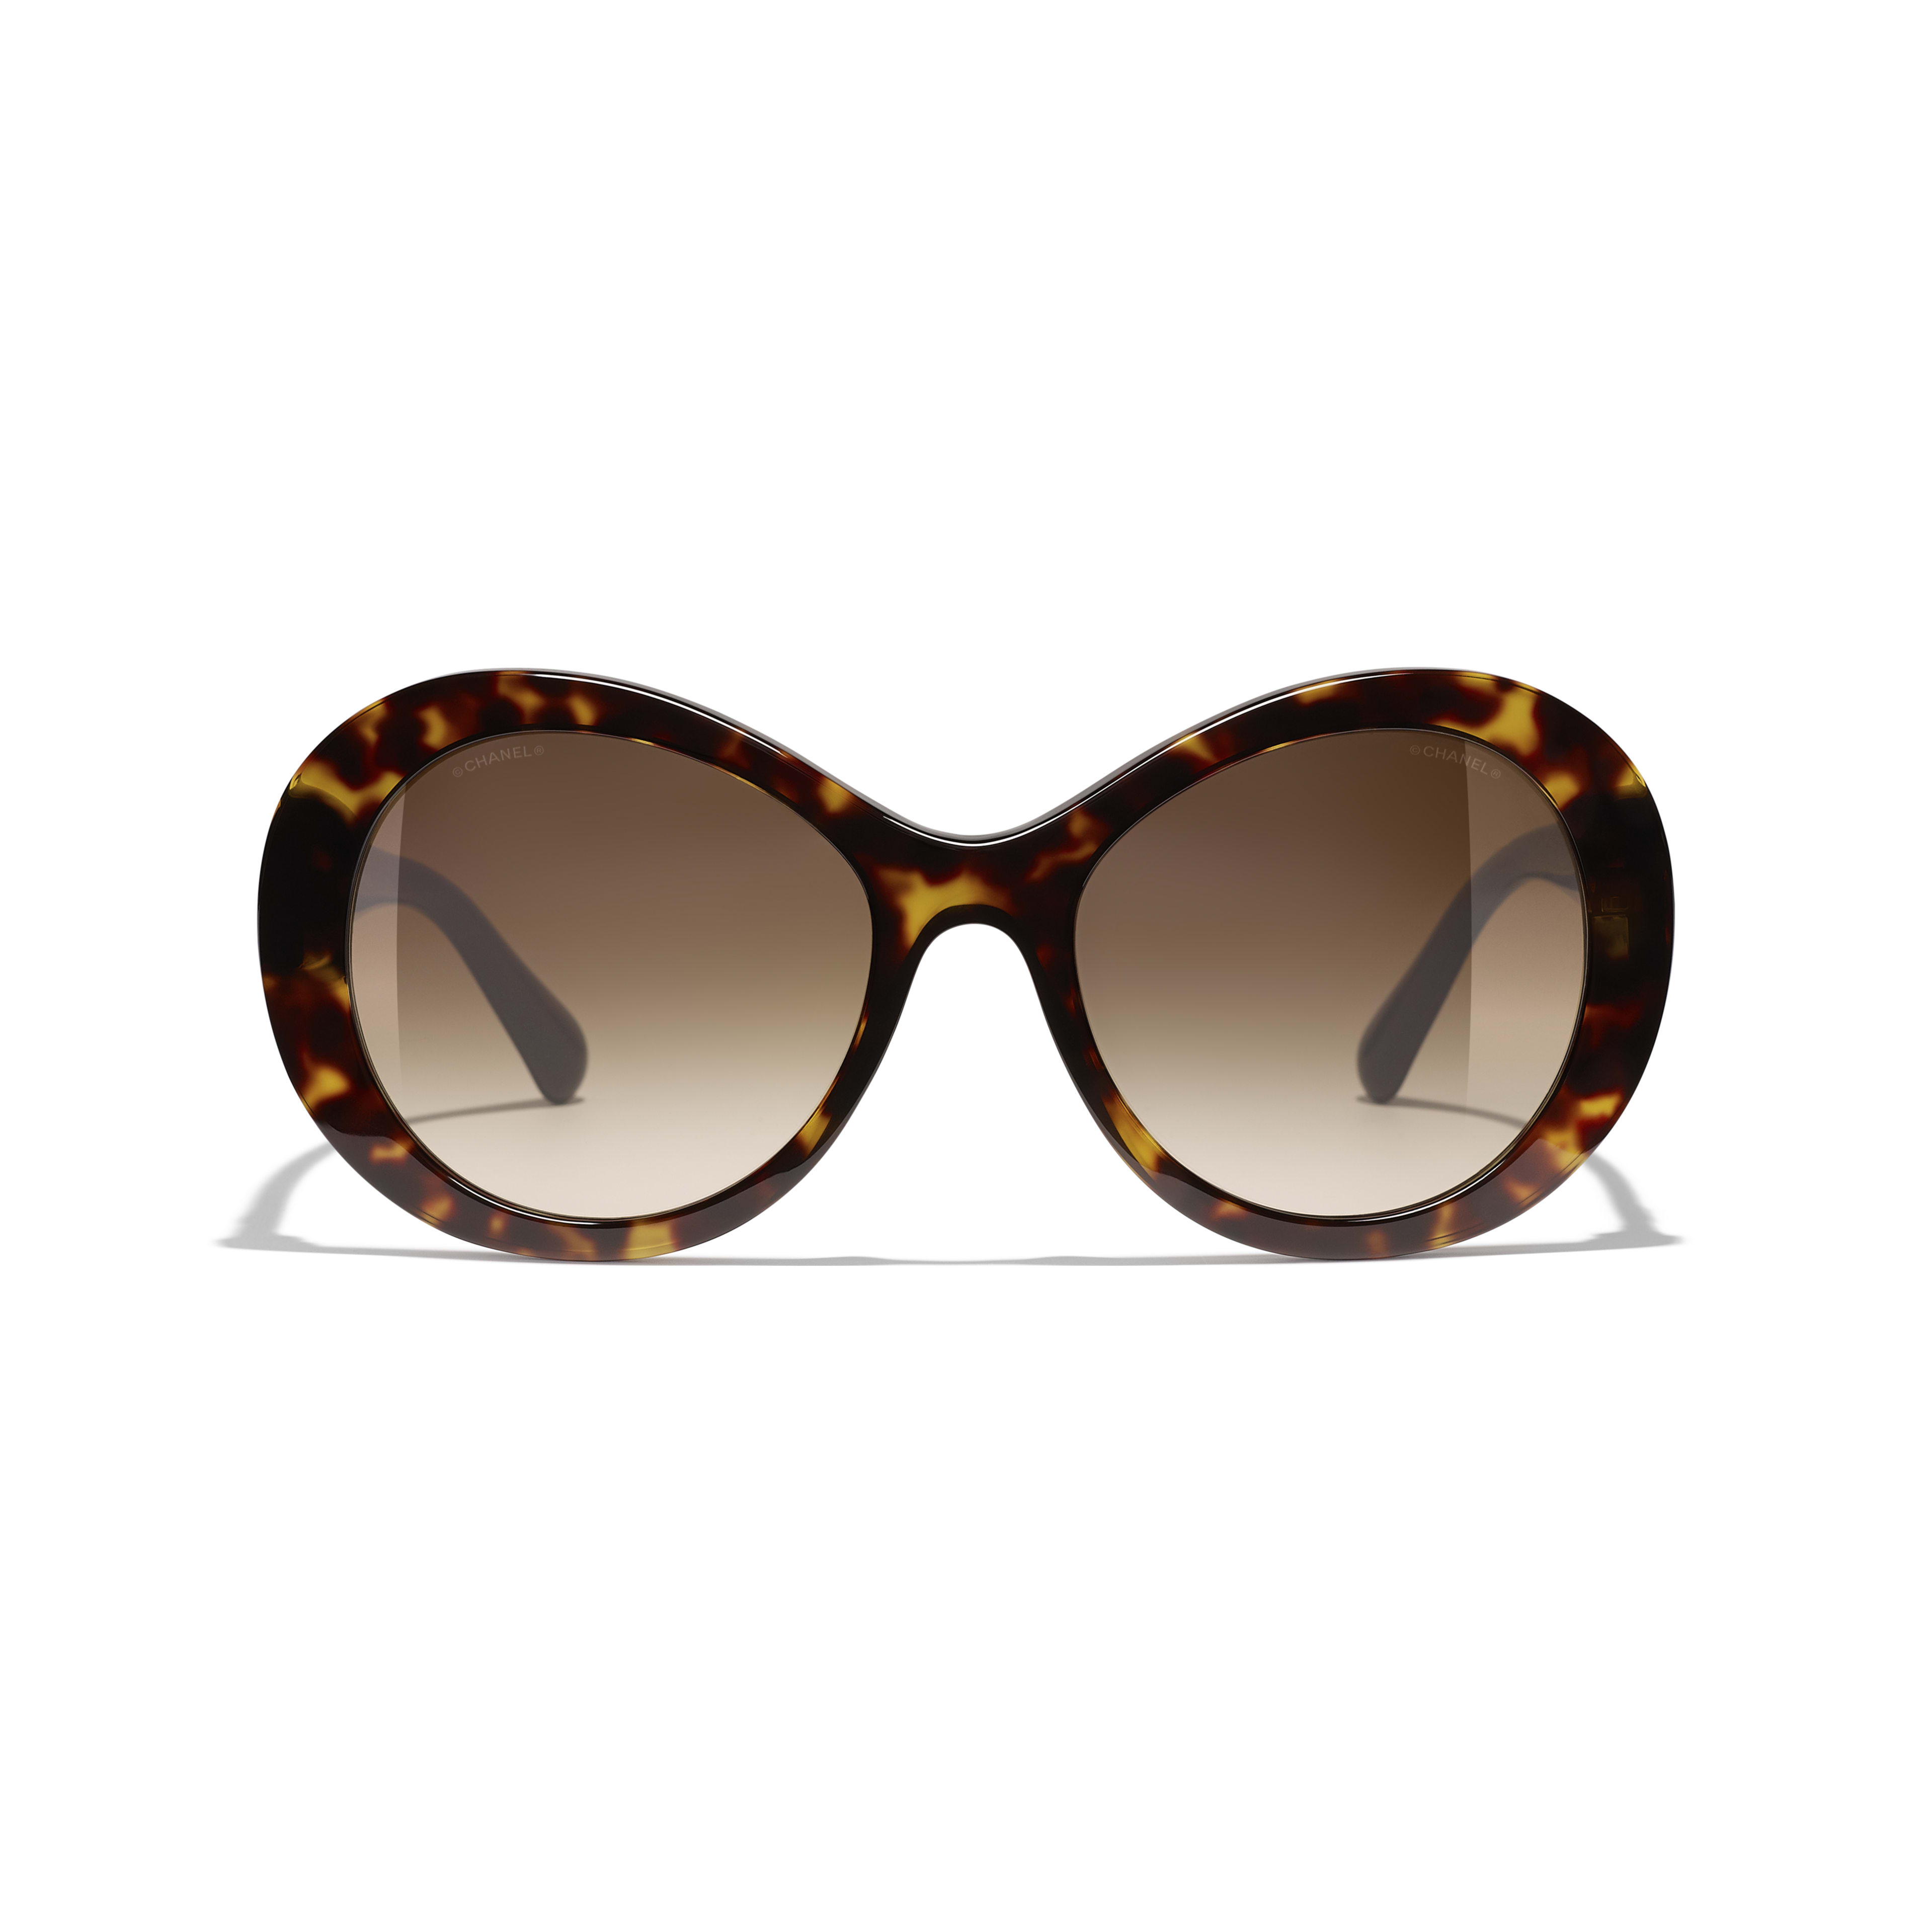 Oval Sunglasses - Dark Tortoise - Acetate - Alternative view - see full sized version